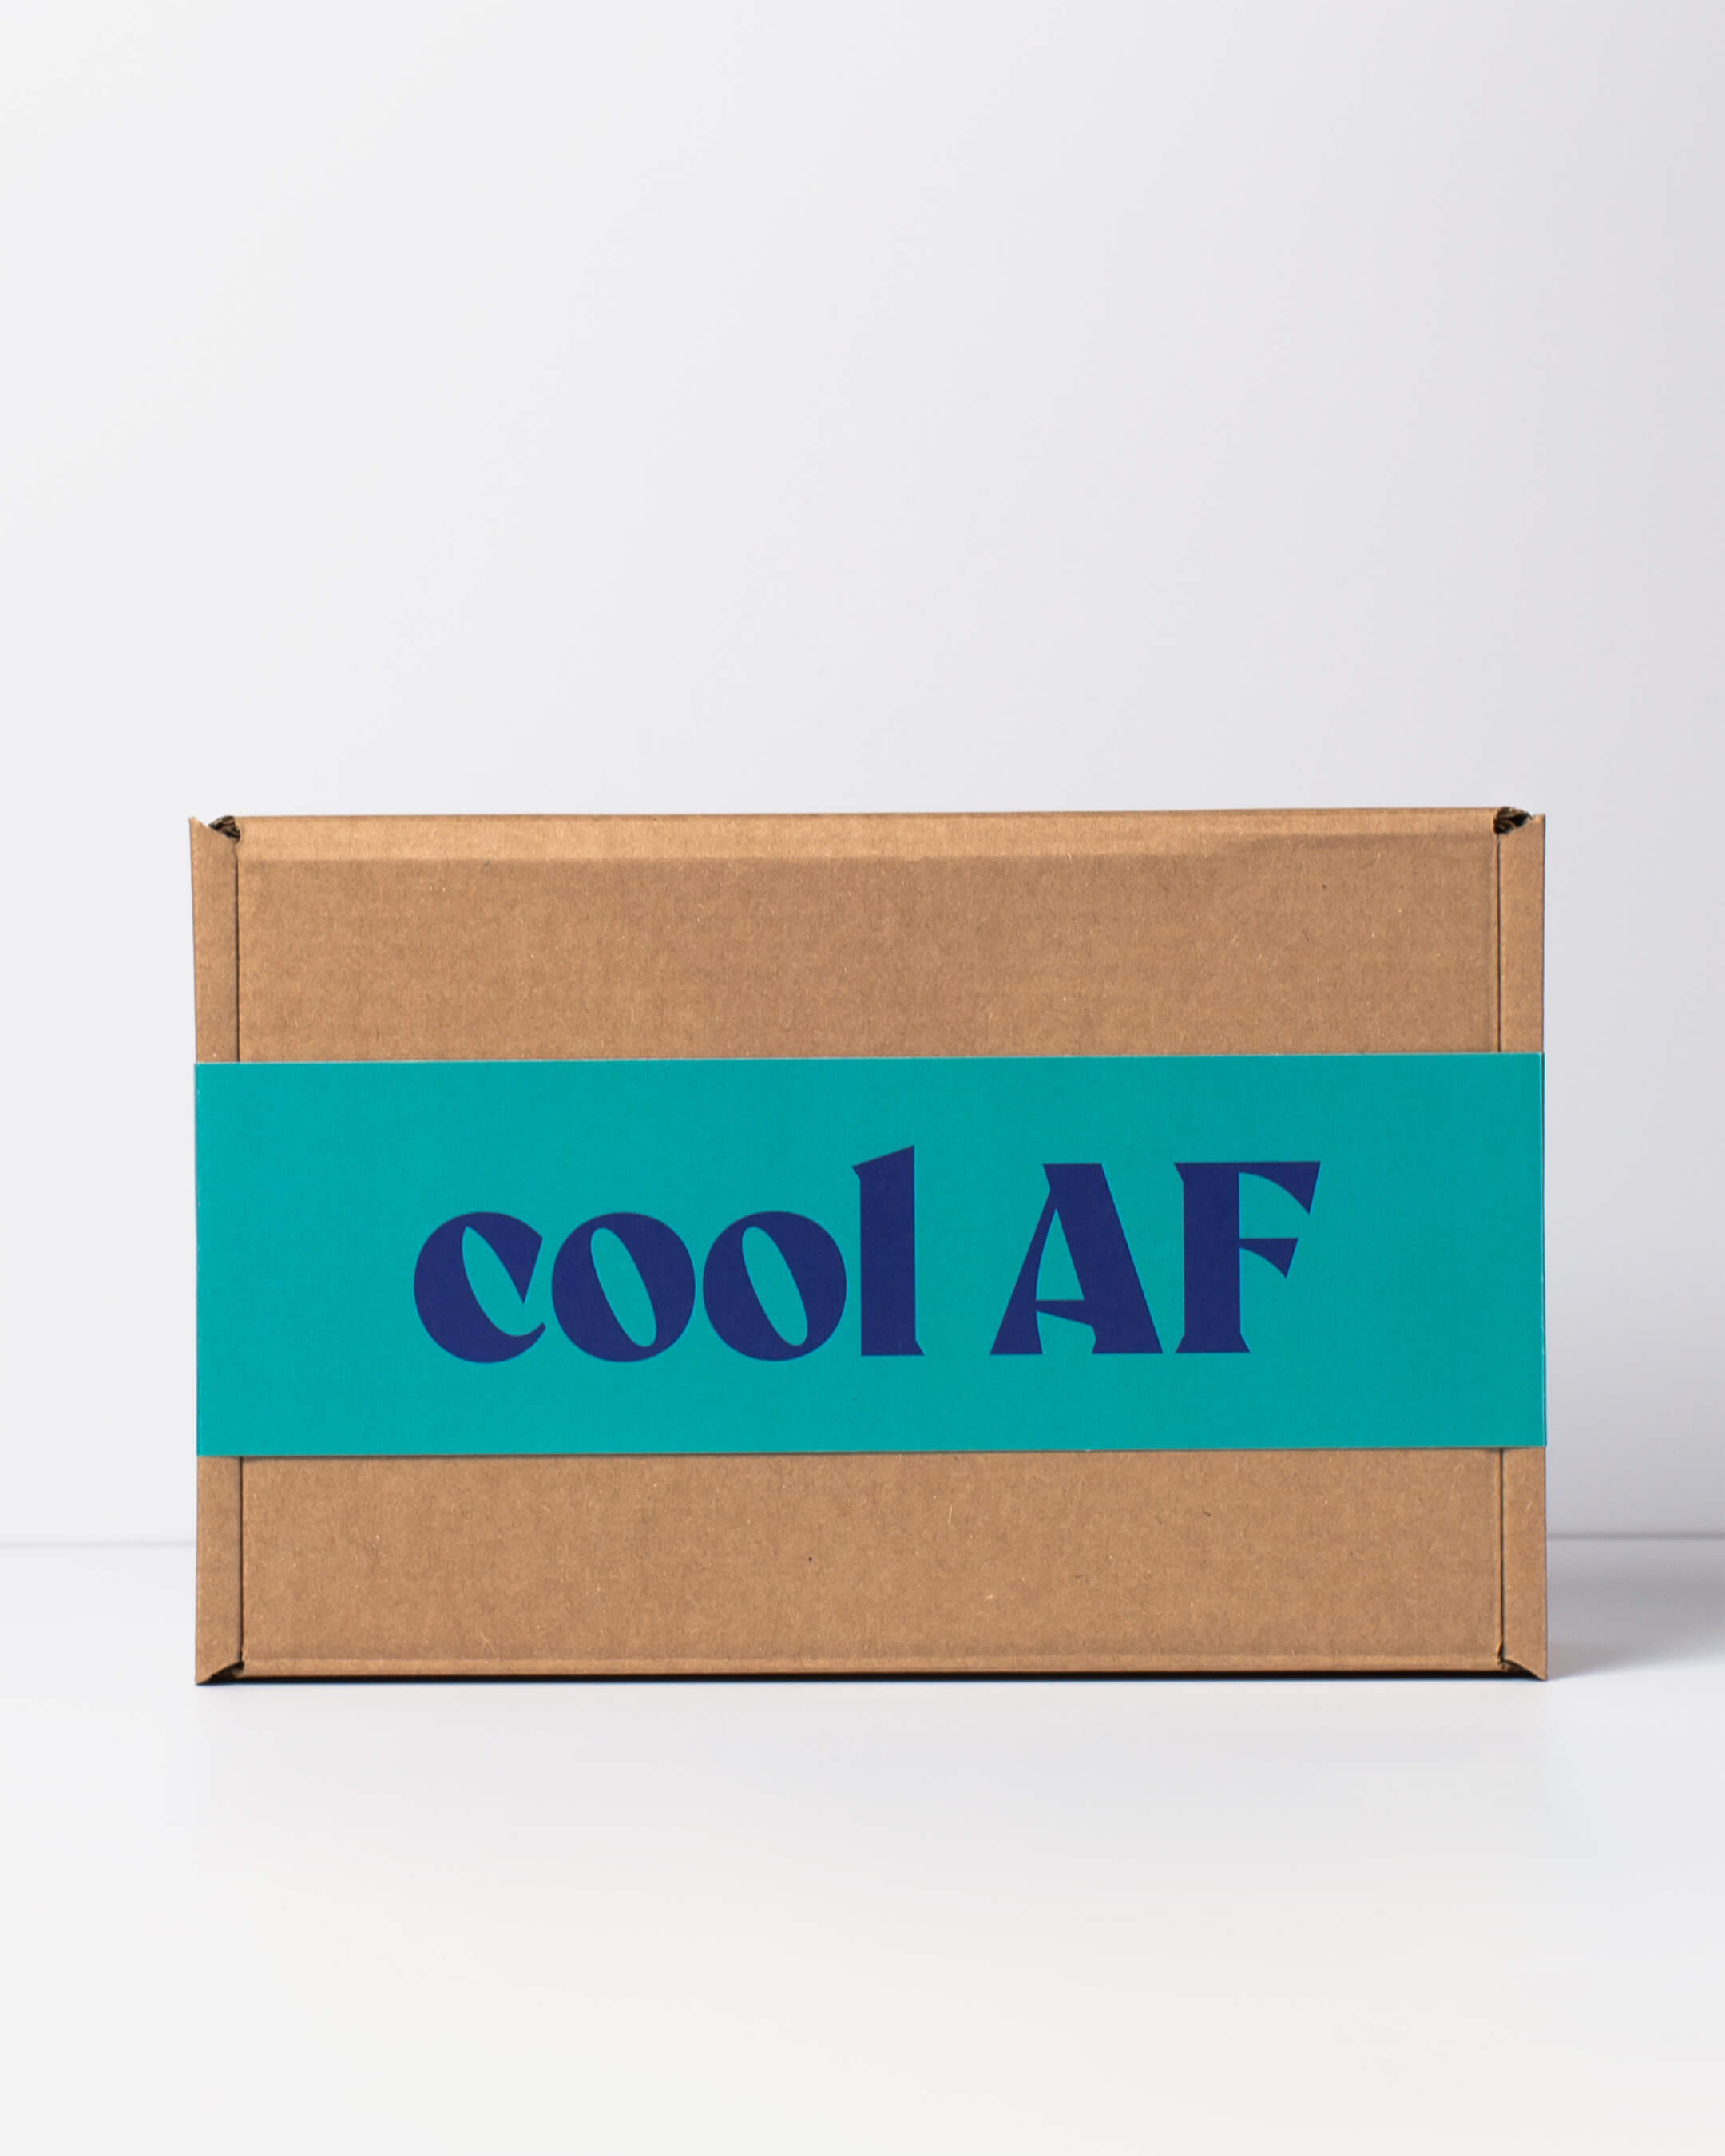 ta. alcohol free craft beer box packaging